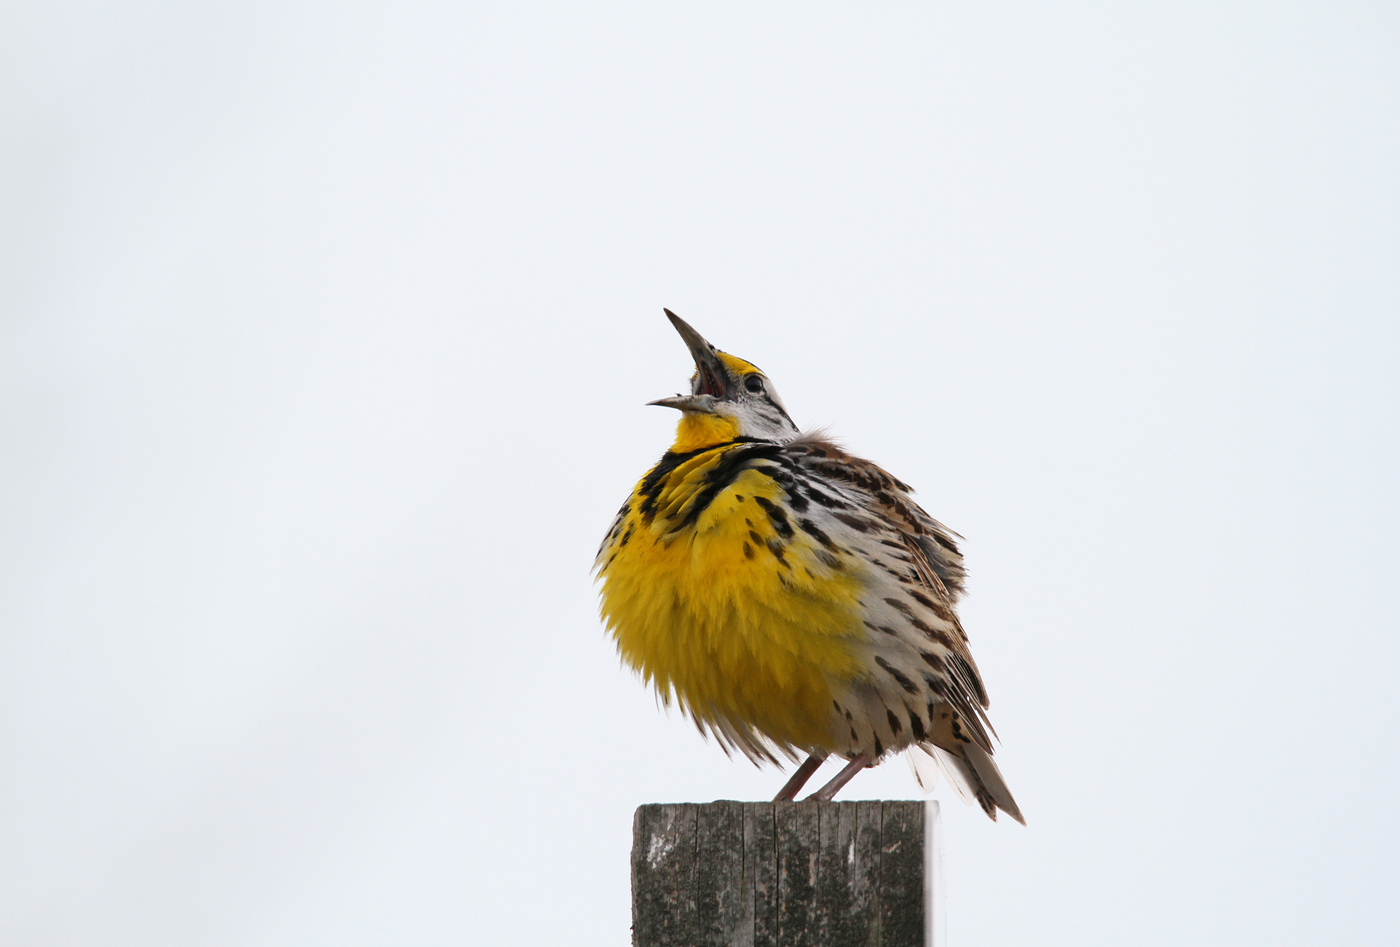 Eastern Meadowlark #20